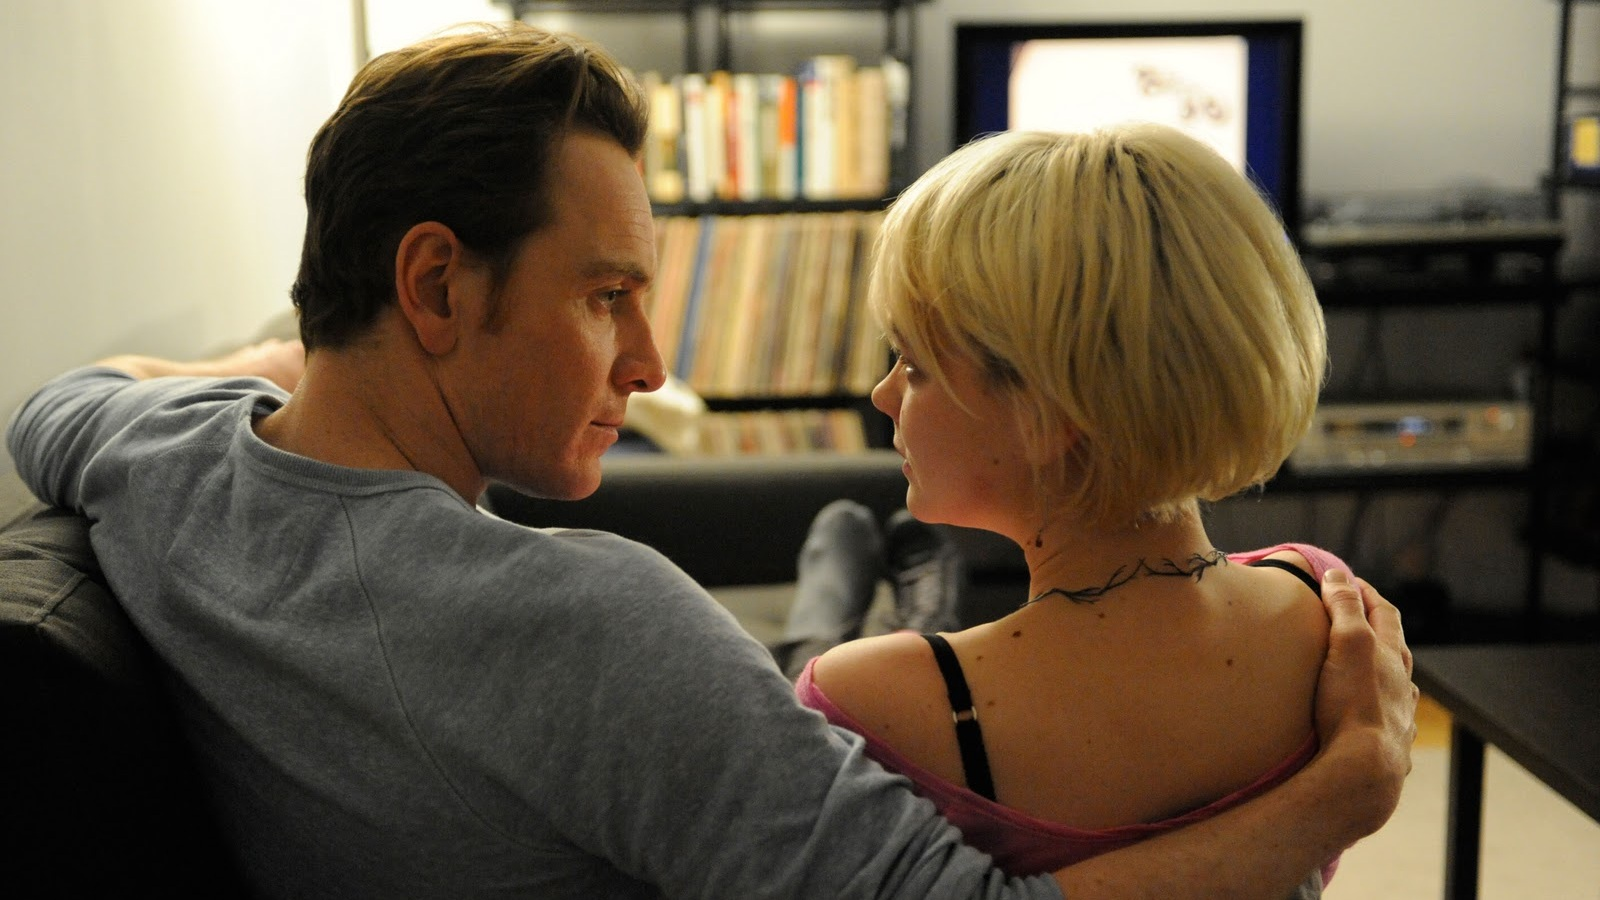 shame-movie-image-michael-fassbender-carey-mulligan-02.jpg